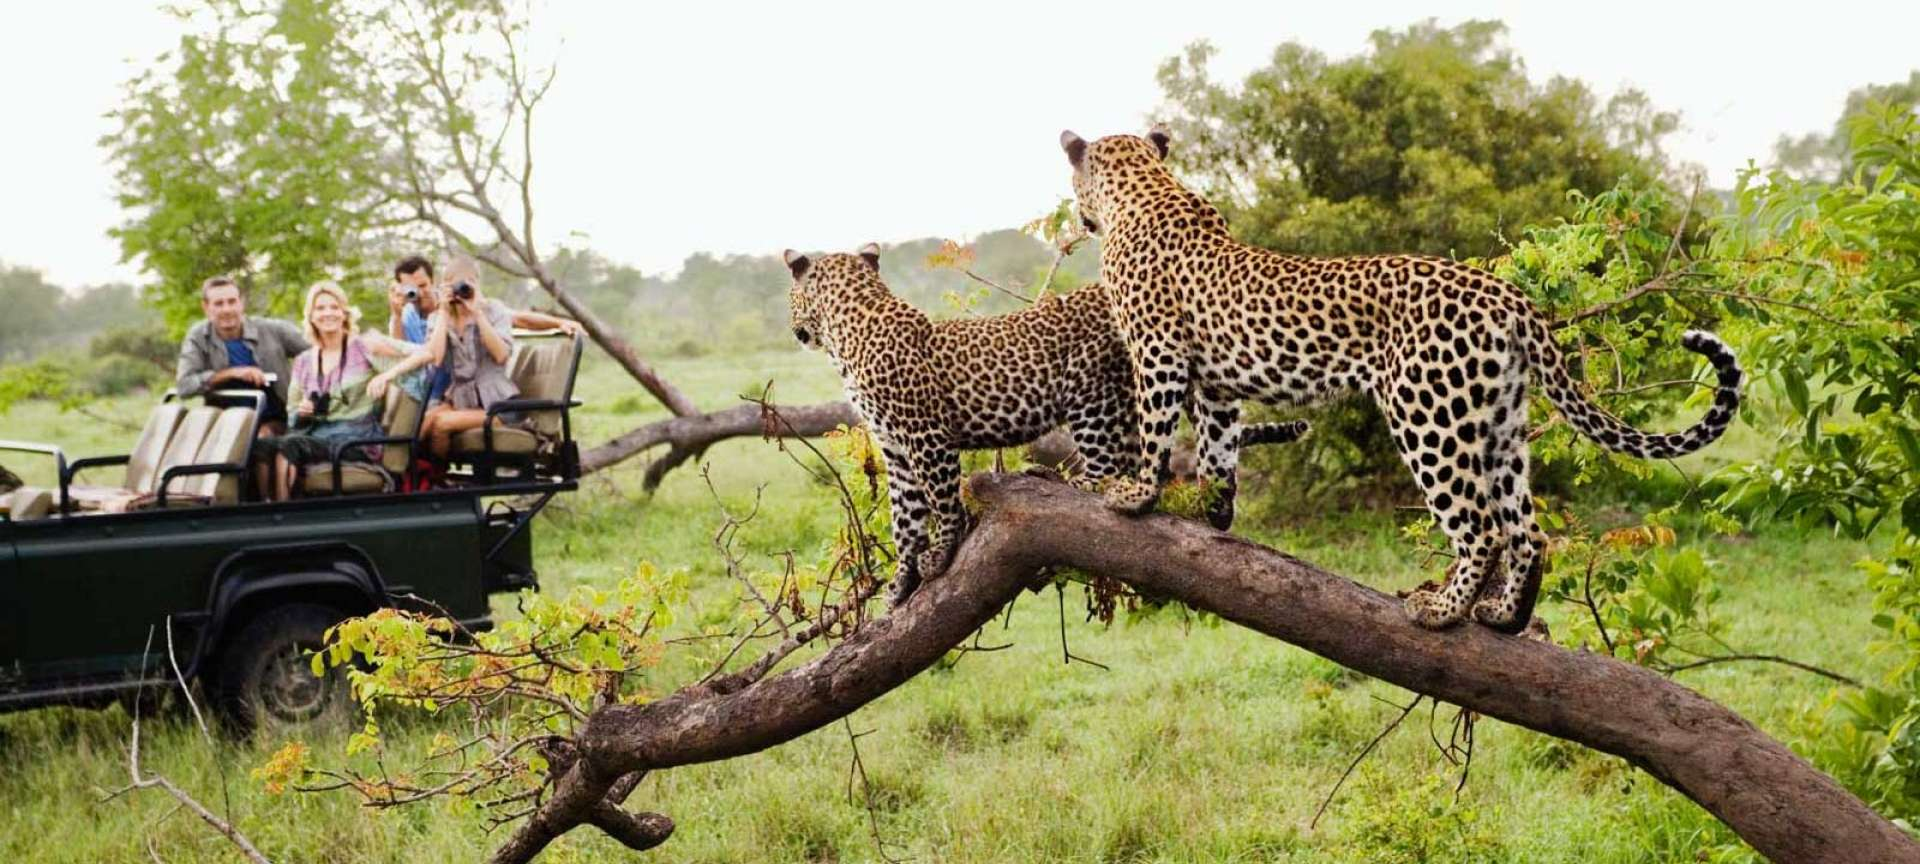 Leopards in the Kruger National Park